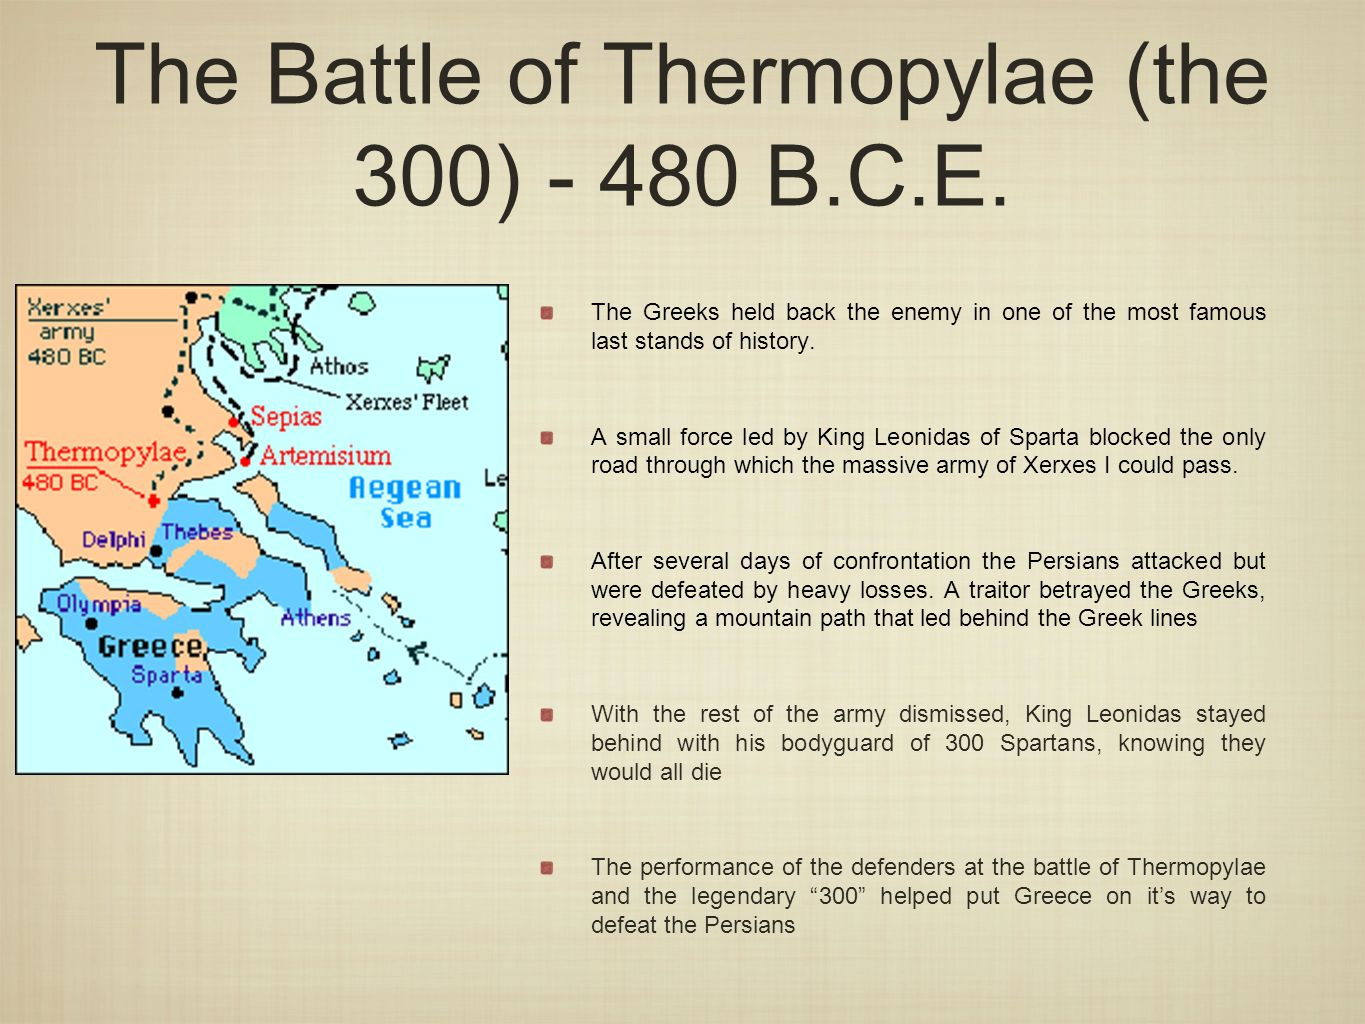 """the battle of thermopylae in the greeces history The battle of thermopylae demonstrated the greeks' """"ambition of glory, the love of their country, all the virtues were carrier to their highest elevation, and the in the death of her warriors"""" there is even a story that says spartan wives and mothers would go examine the bodies of their loved ones after battle to ensure that."""